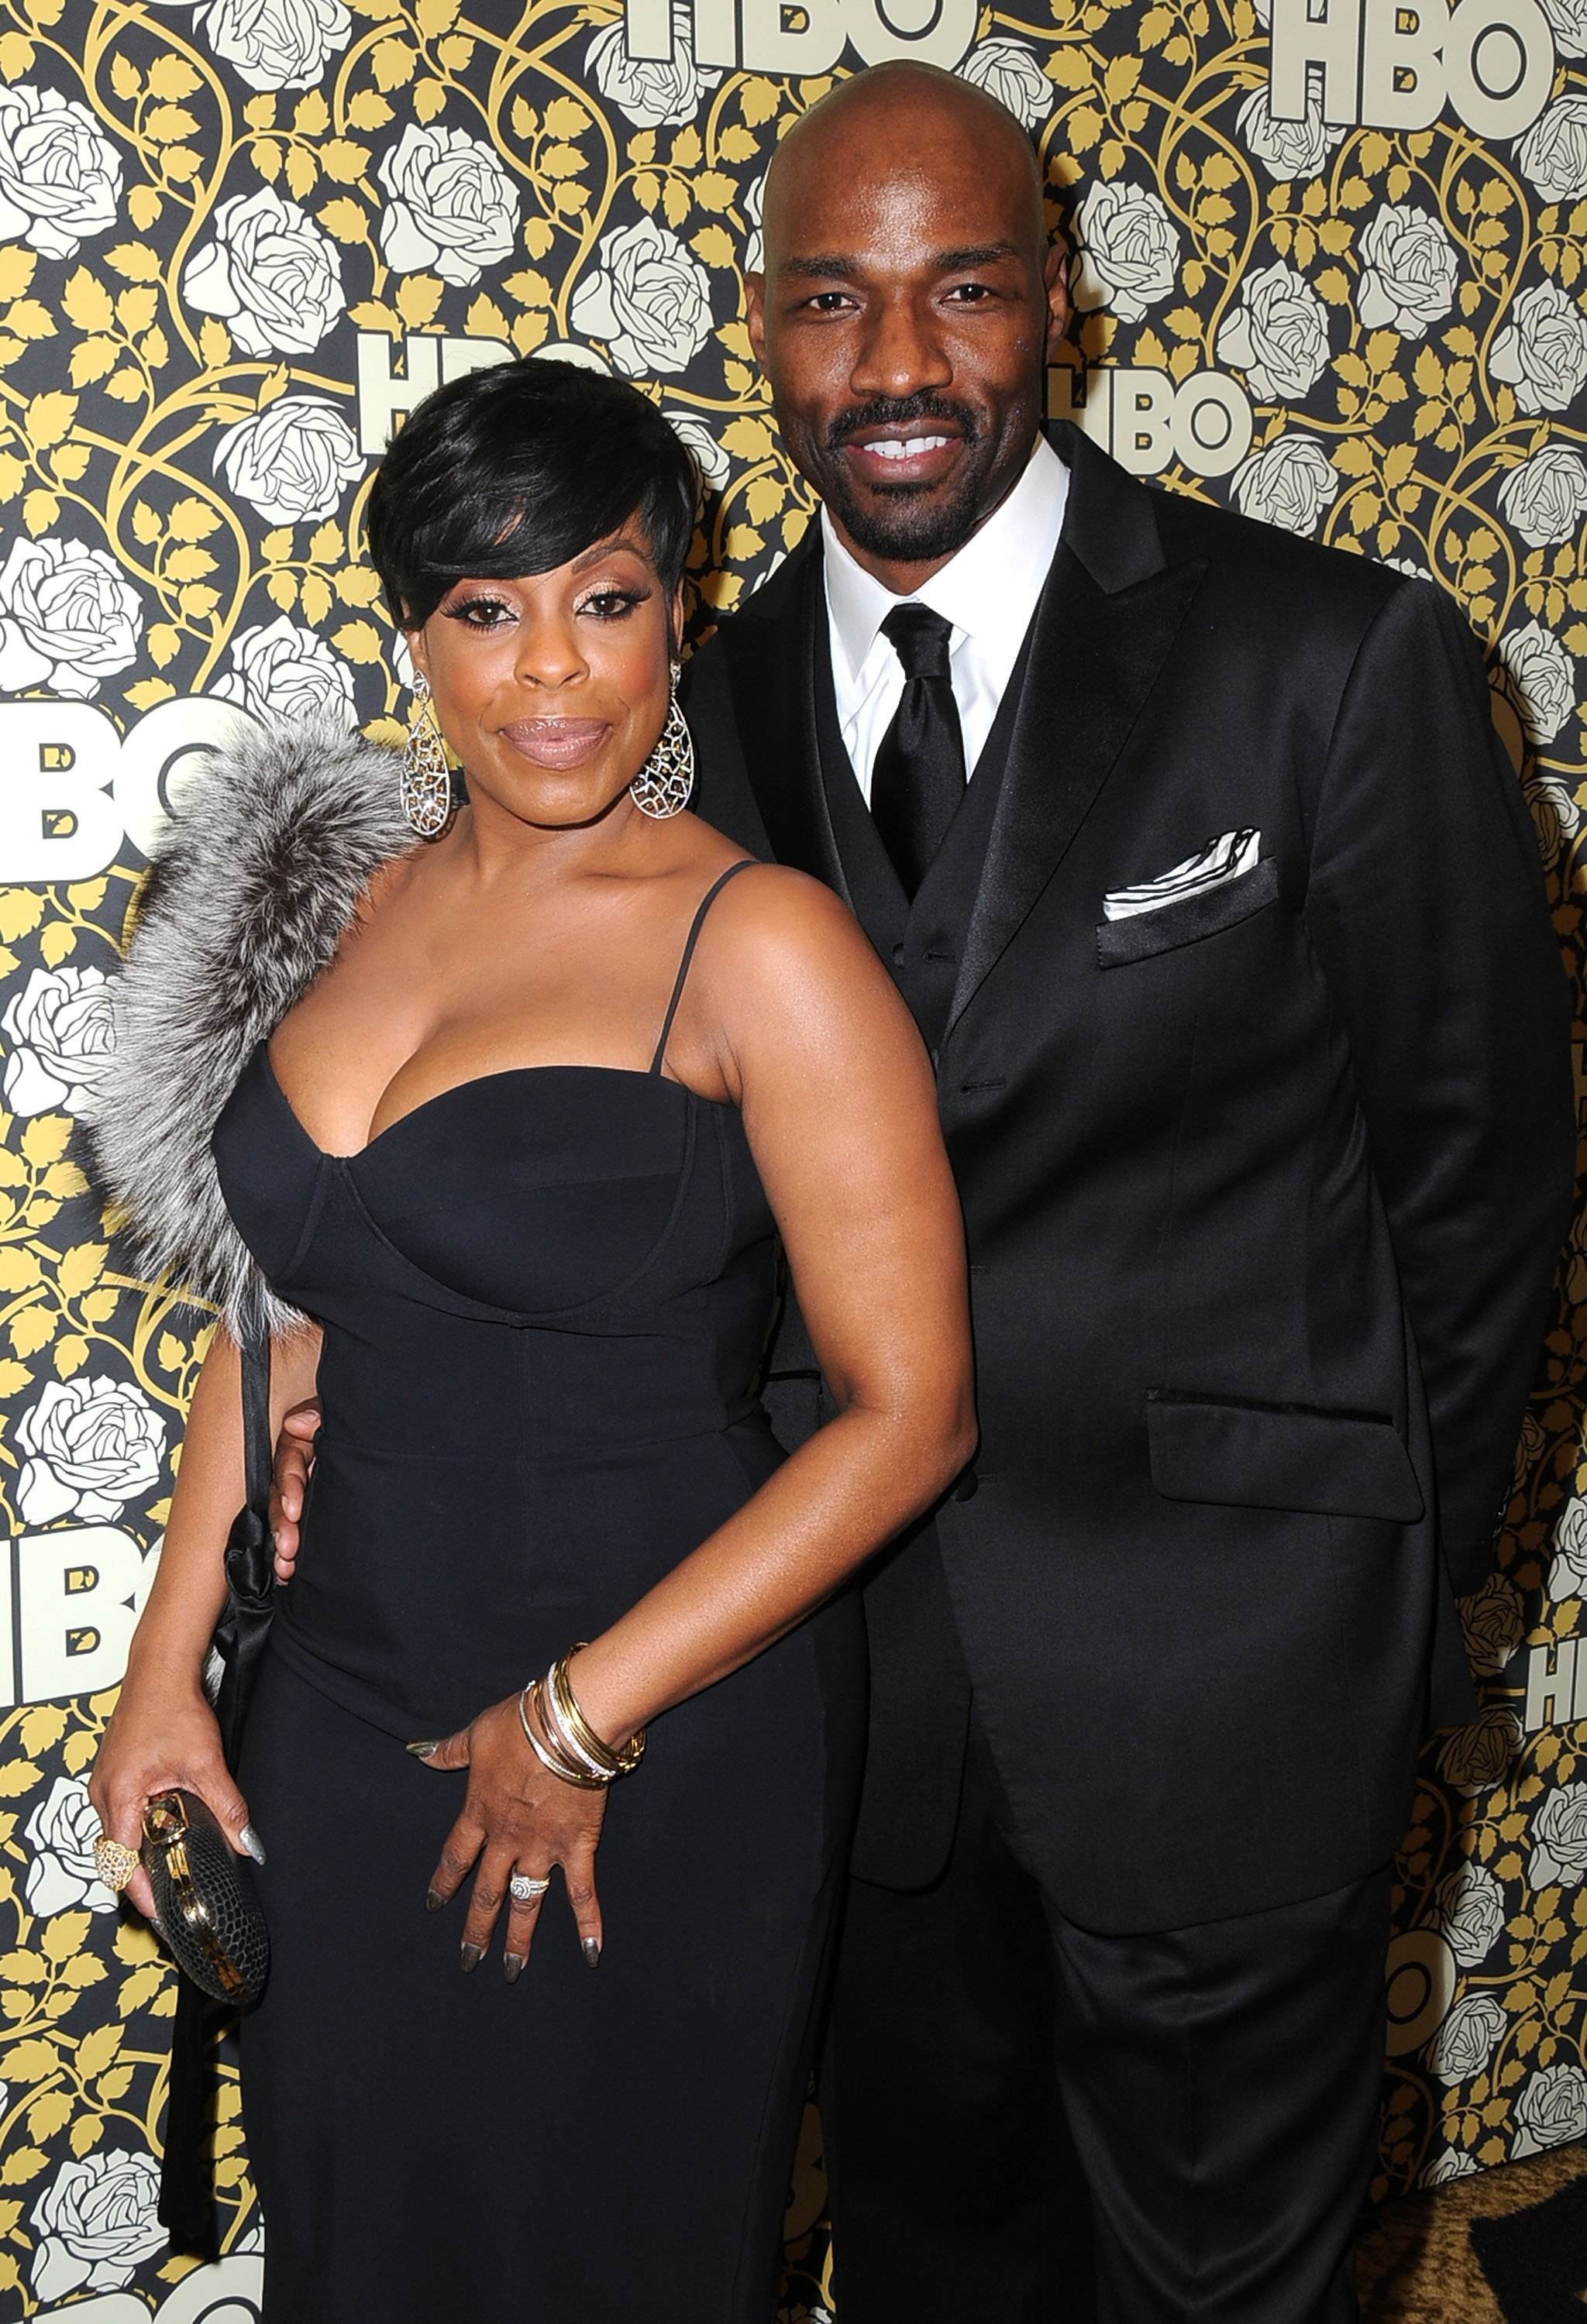 Niecy Nash and Jay Tucker at HBO's Post Golden Globes Awards Party in 2015. | Photo: Getty Images